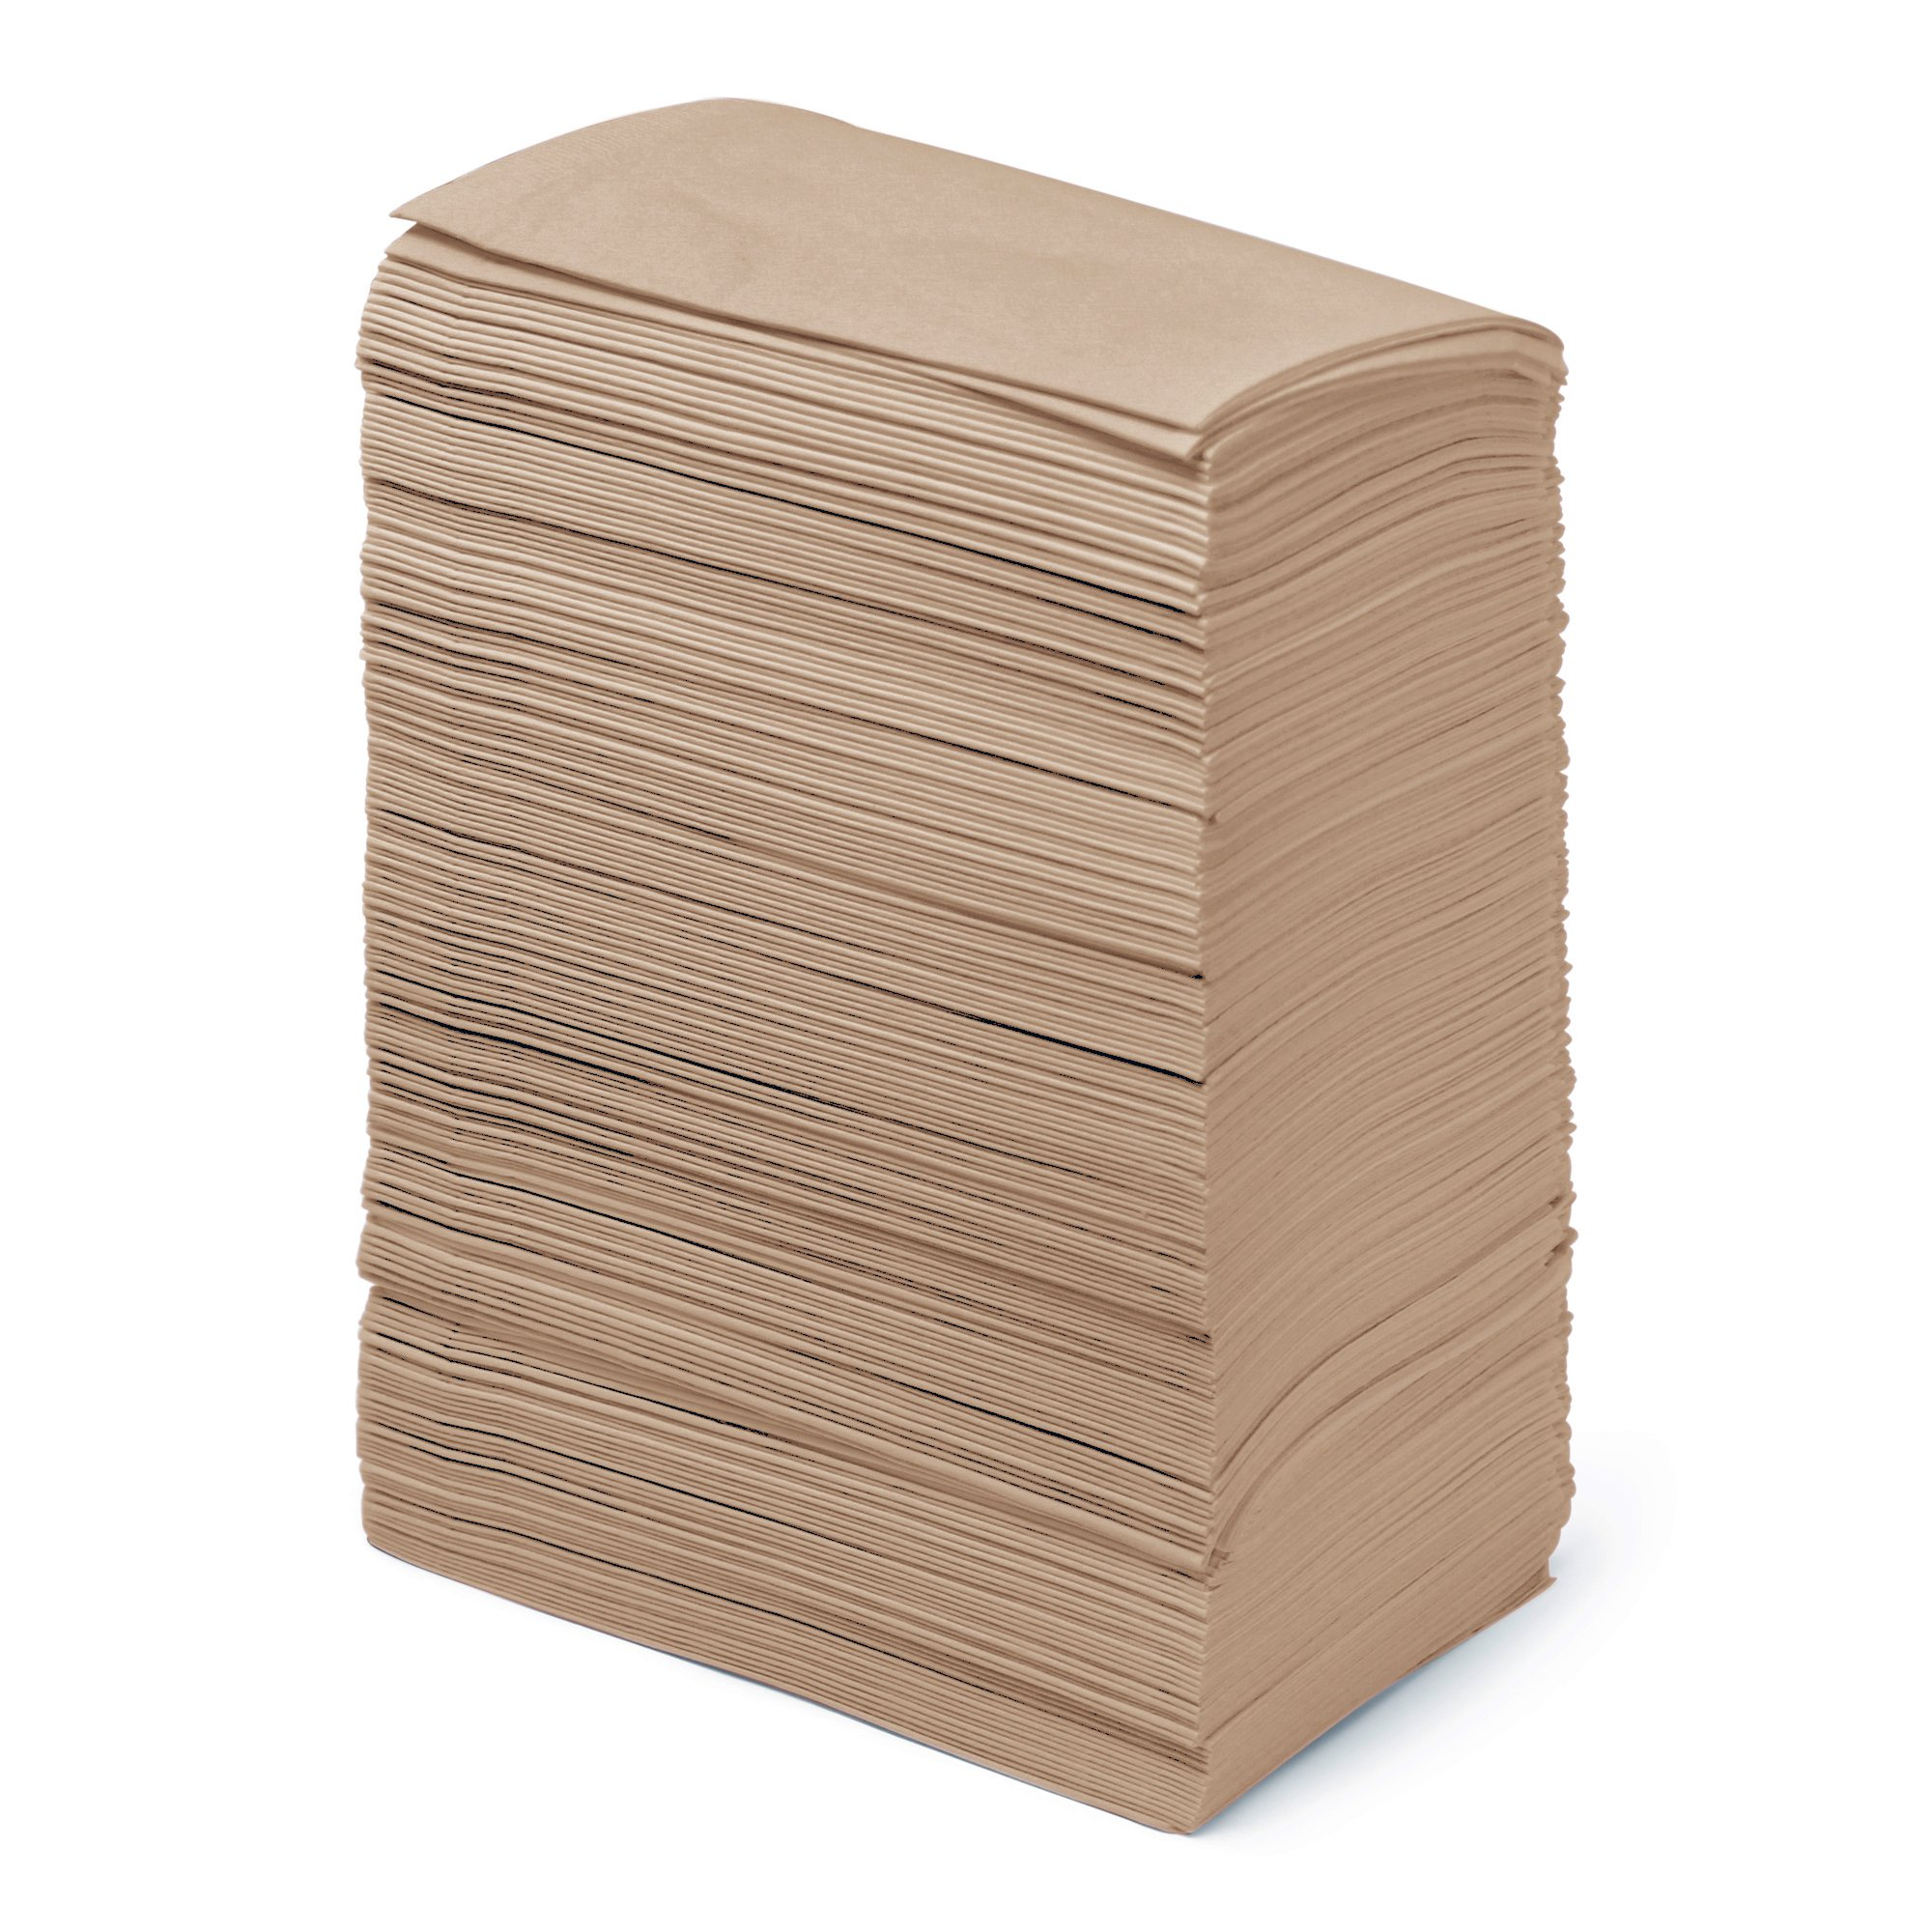 Dinner Napkins Paper Bulk 2-Ply - 3000 Count - 15'' x 17'' - Natural - Disposable - Embossed Pattern - Commercial or Business - Restaurants, Bars, Corporate, Catered Events, Party - Paterson Paper